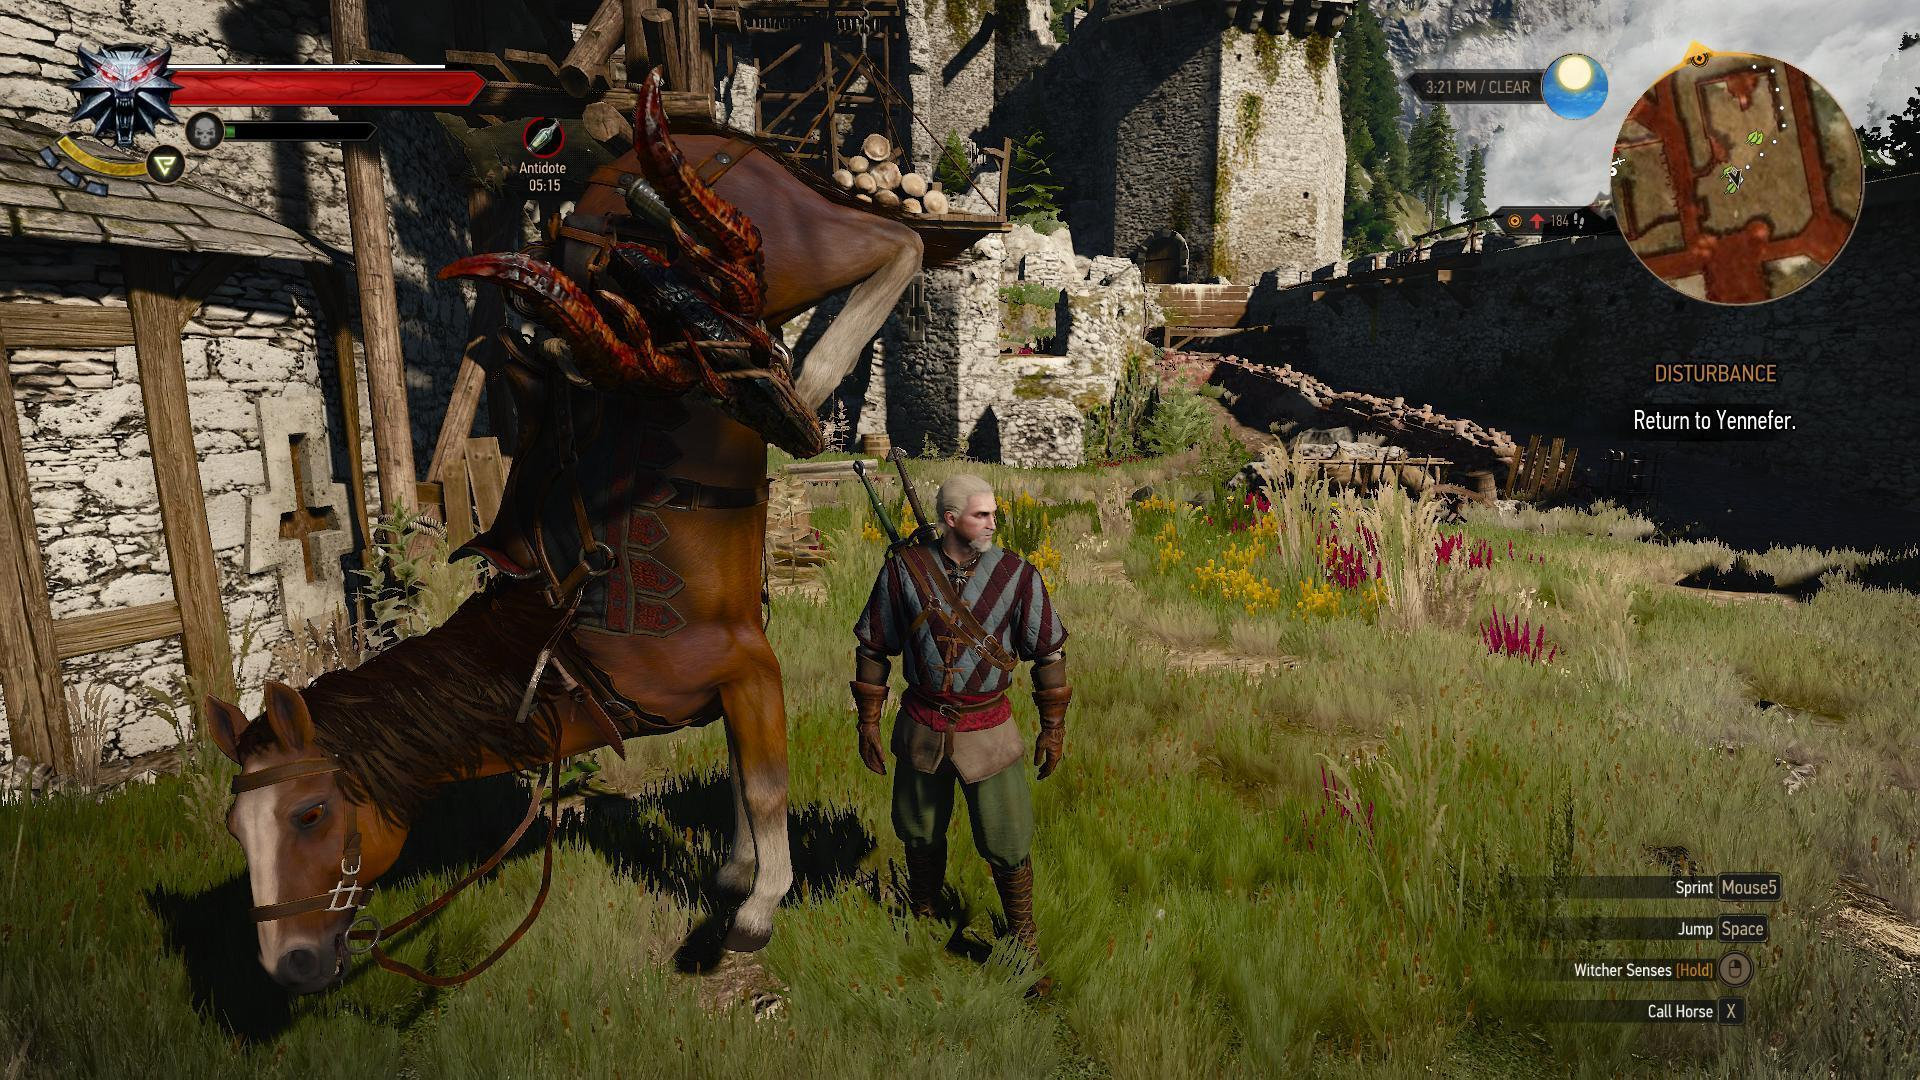 Roach Is One More Thing That The Witcher Tv Series Gets